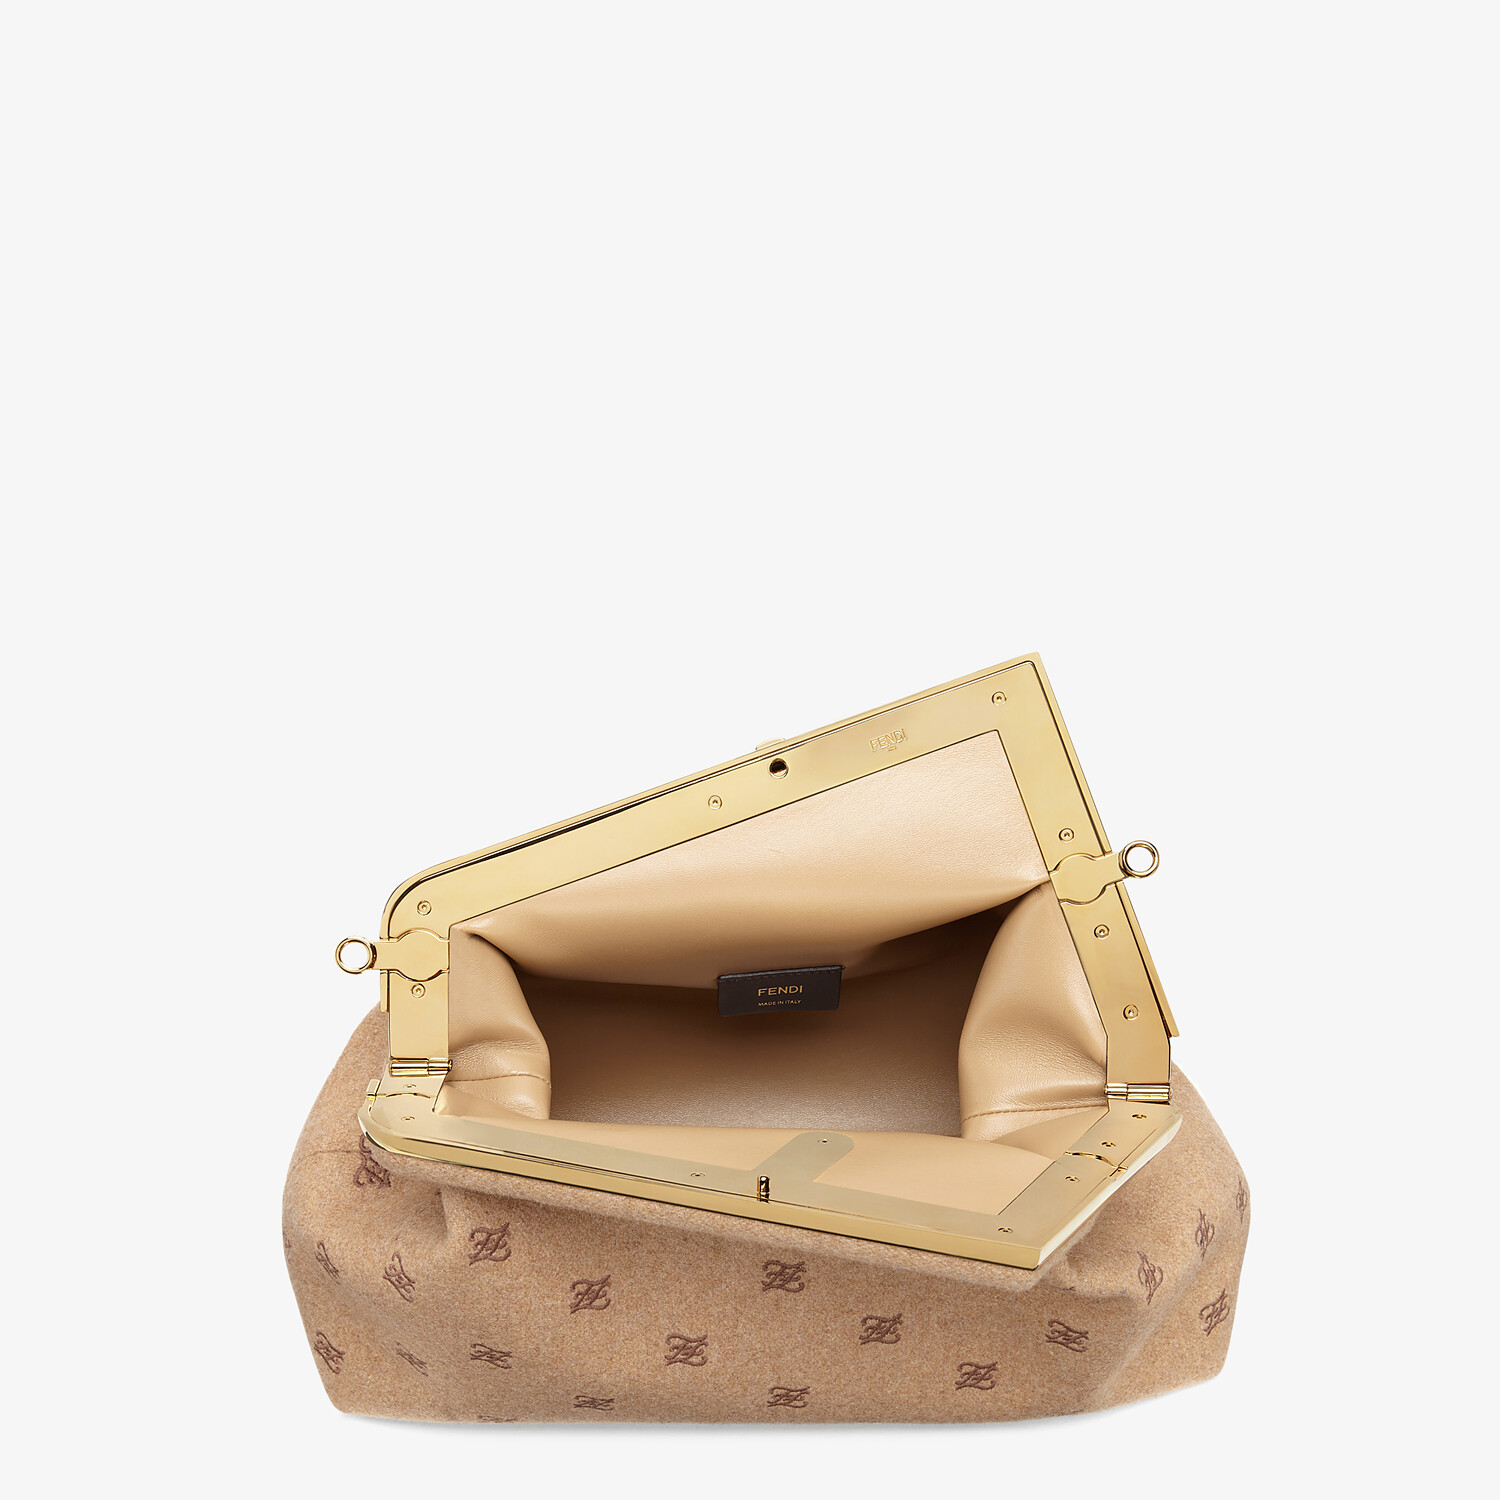 FENDI FENDI FIRST MEDIUM - Beige flannel bag with embroidery - view 5 detail